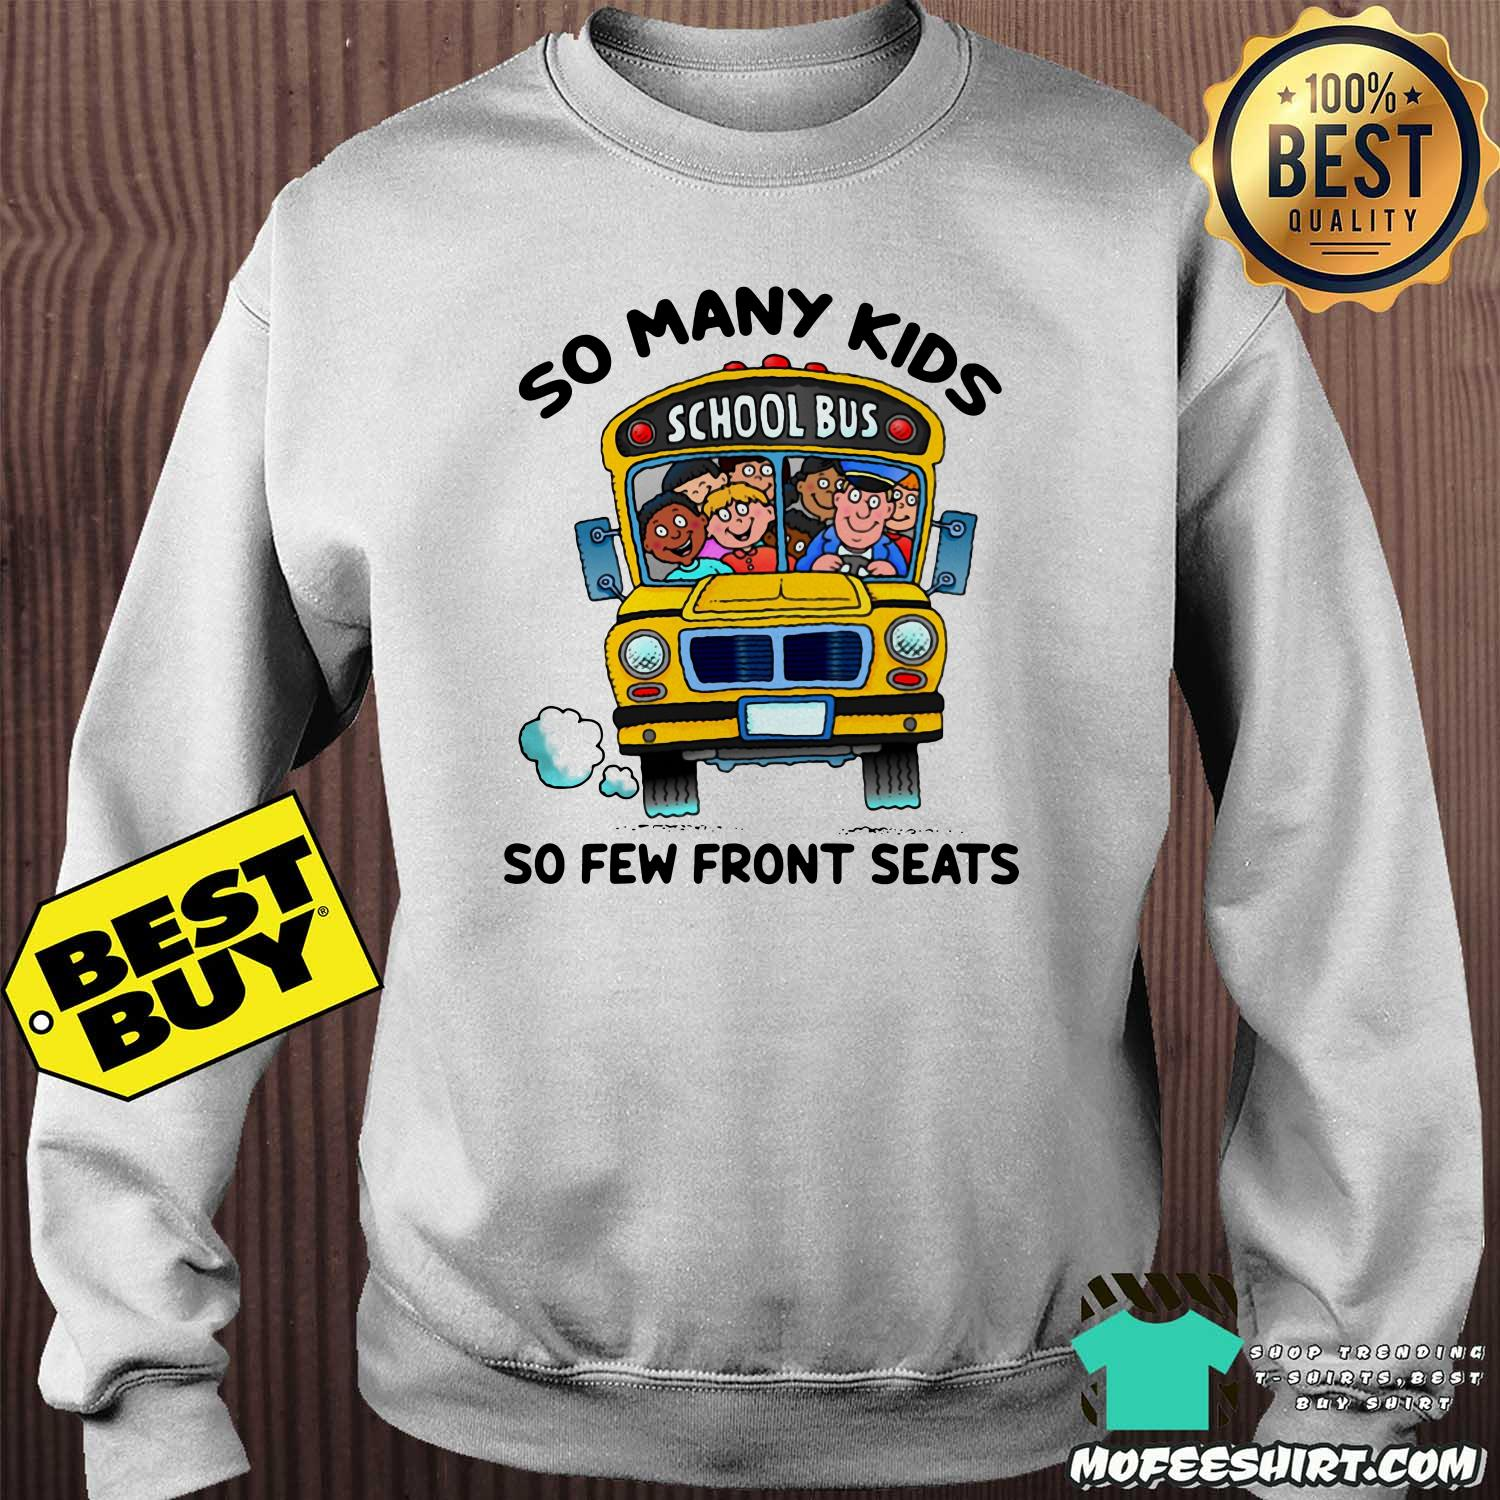 so many kids school bus so few front seats sweatshirt - So Many Kids School Bus So Few Front Seats shirt